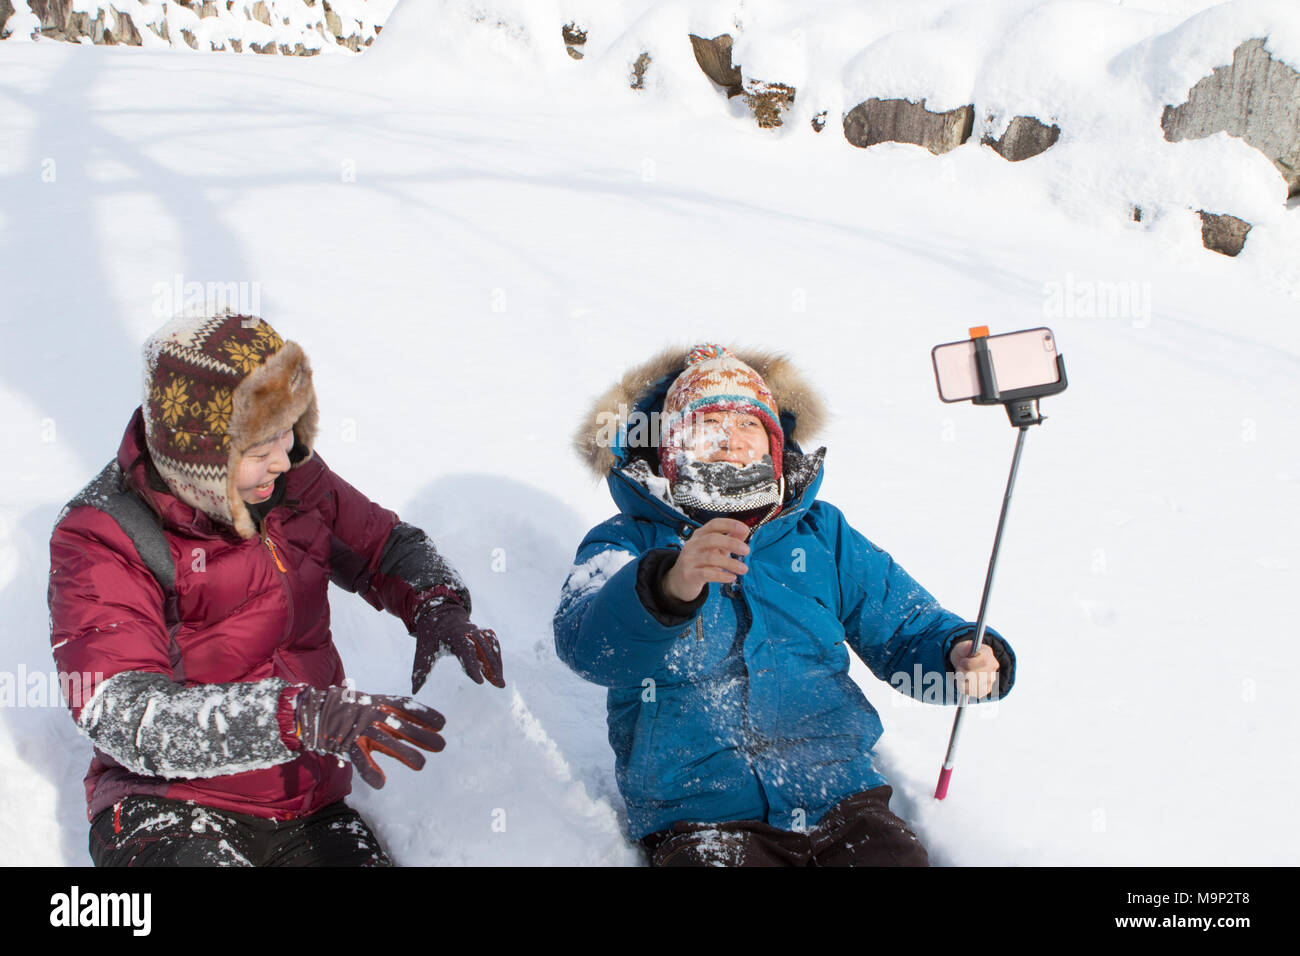 A young couple is playing in the snow in Seoraksan National Park, Gangwon-do, South Korea. The girl just threw a snowball in the face of her boy friend, who is filming with a smart phone on a selfie stick.  Seoraksan is a beautiful and iconic National Park in the mountains near Sokcho in the Gangwon-do region of South Korea. The name refers to Snowy Crags Mountains. Set against the landscape are two Buddhist temples: Sinheung-sa and Beakdam-sa. This region is hosting the winter Olympics in February 2018.   Seoraksan is a beautiful and iconic National Park in the mountains near Sokcho in the - Stock Image